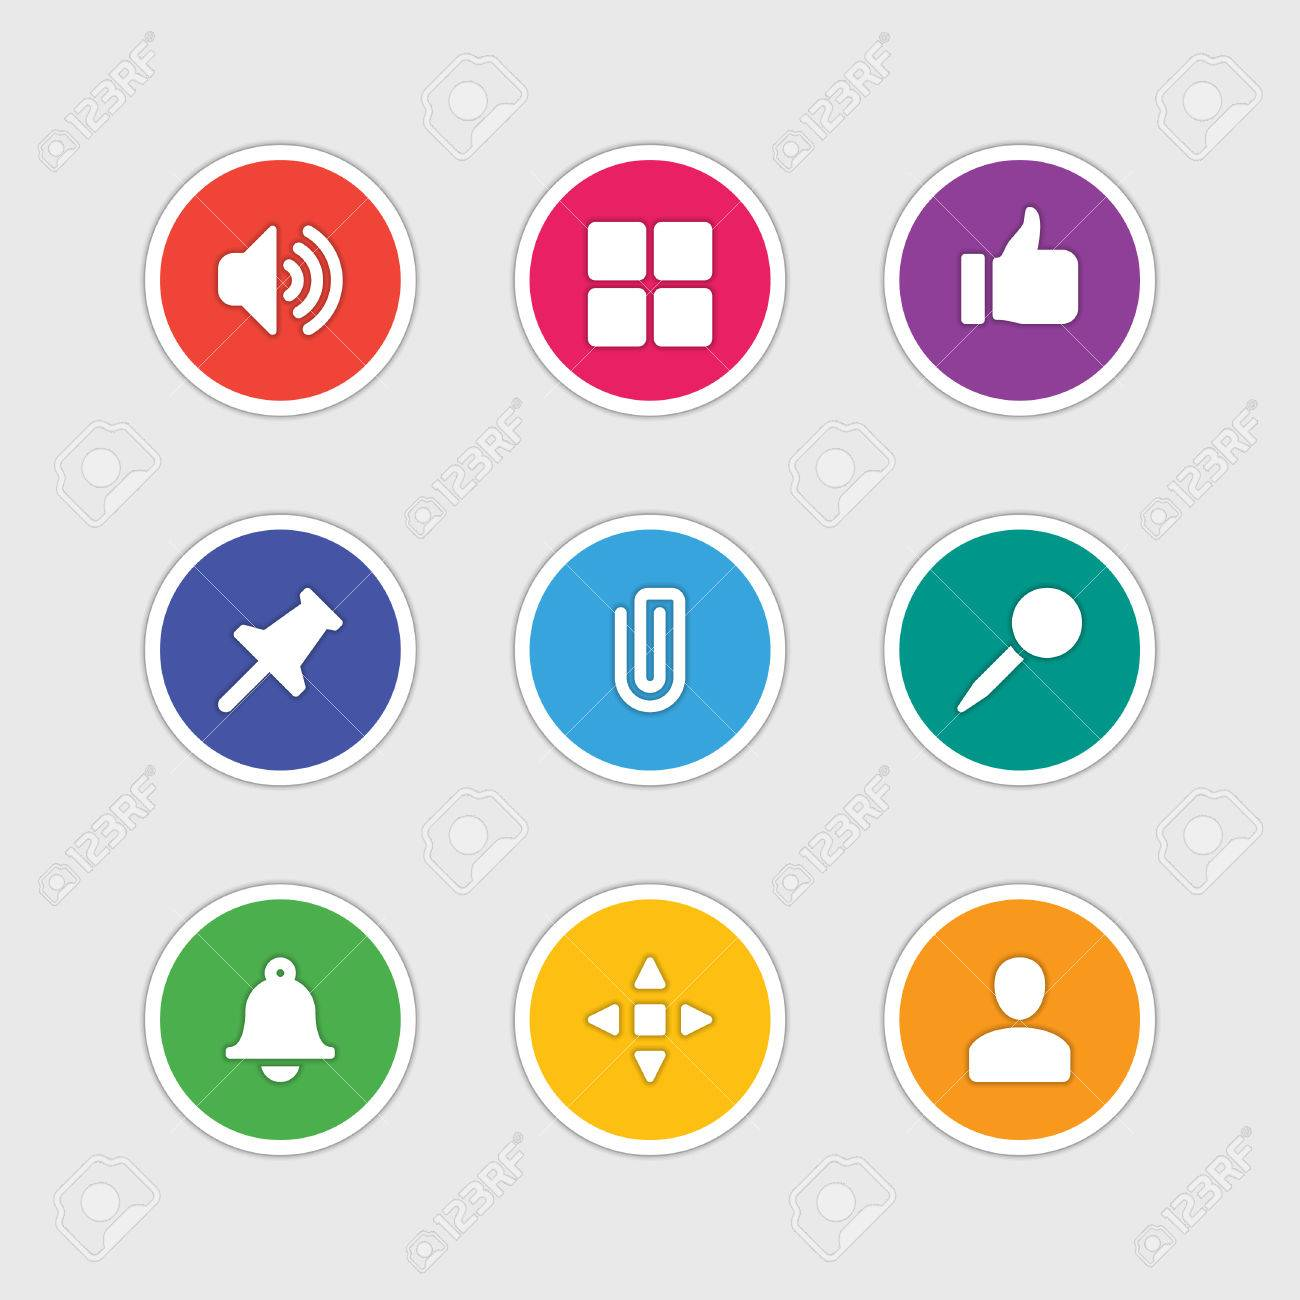 Material Design Style Icons Vector Sign And Symbols Speaker